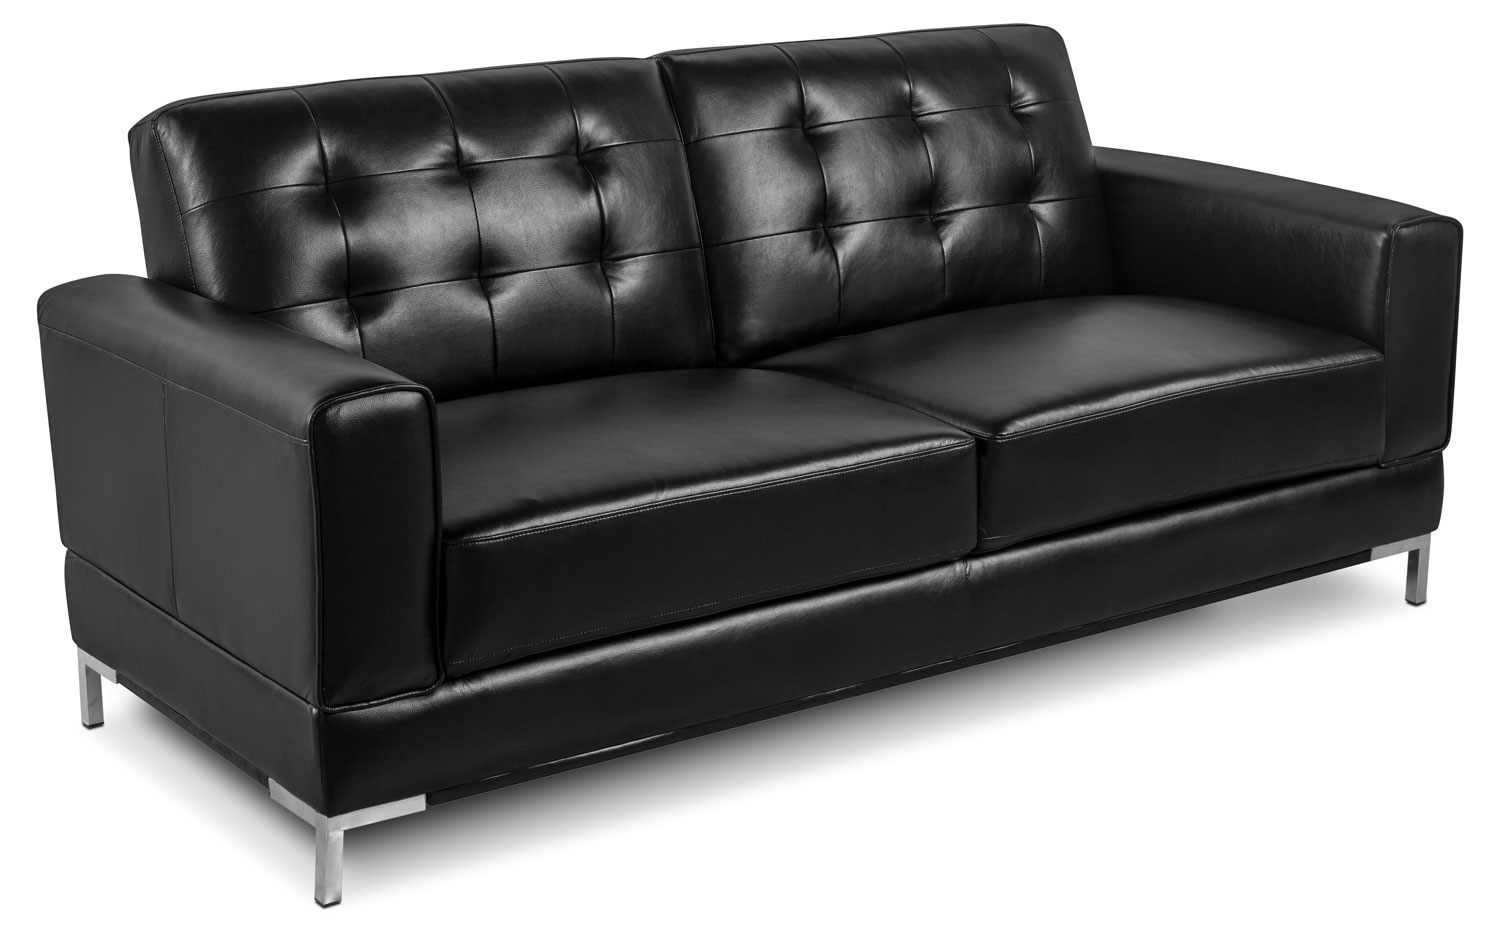 Living Room Furniture - Myer Leather-Look Fabric Sofa - Black